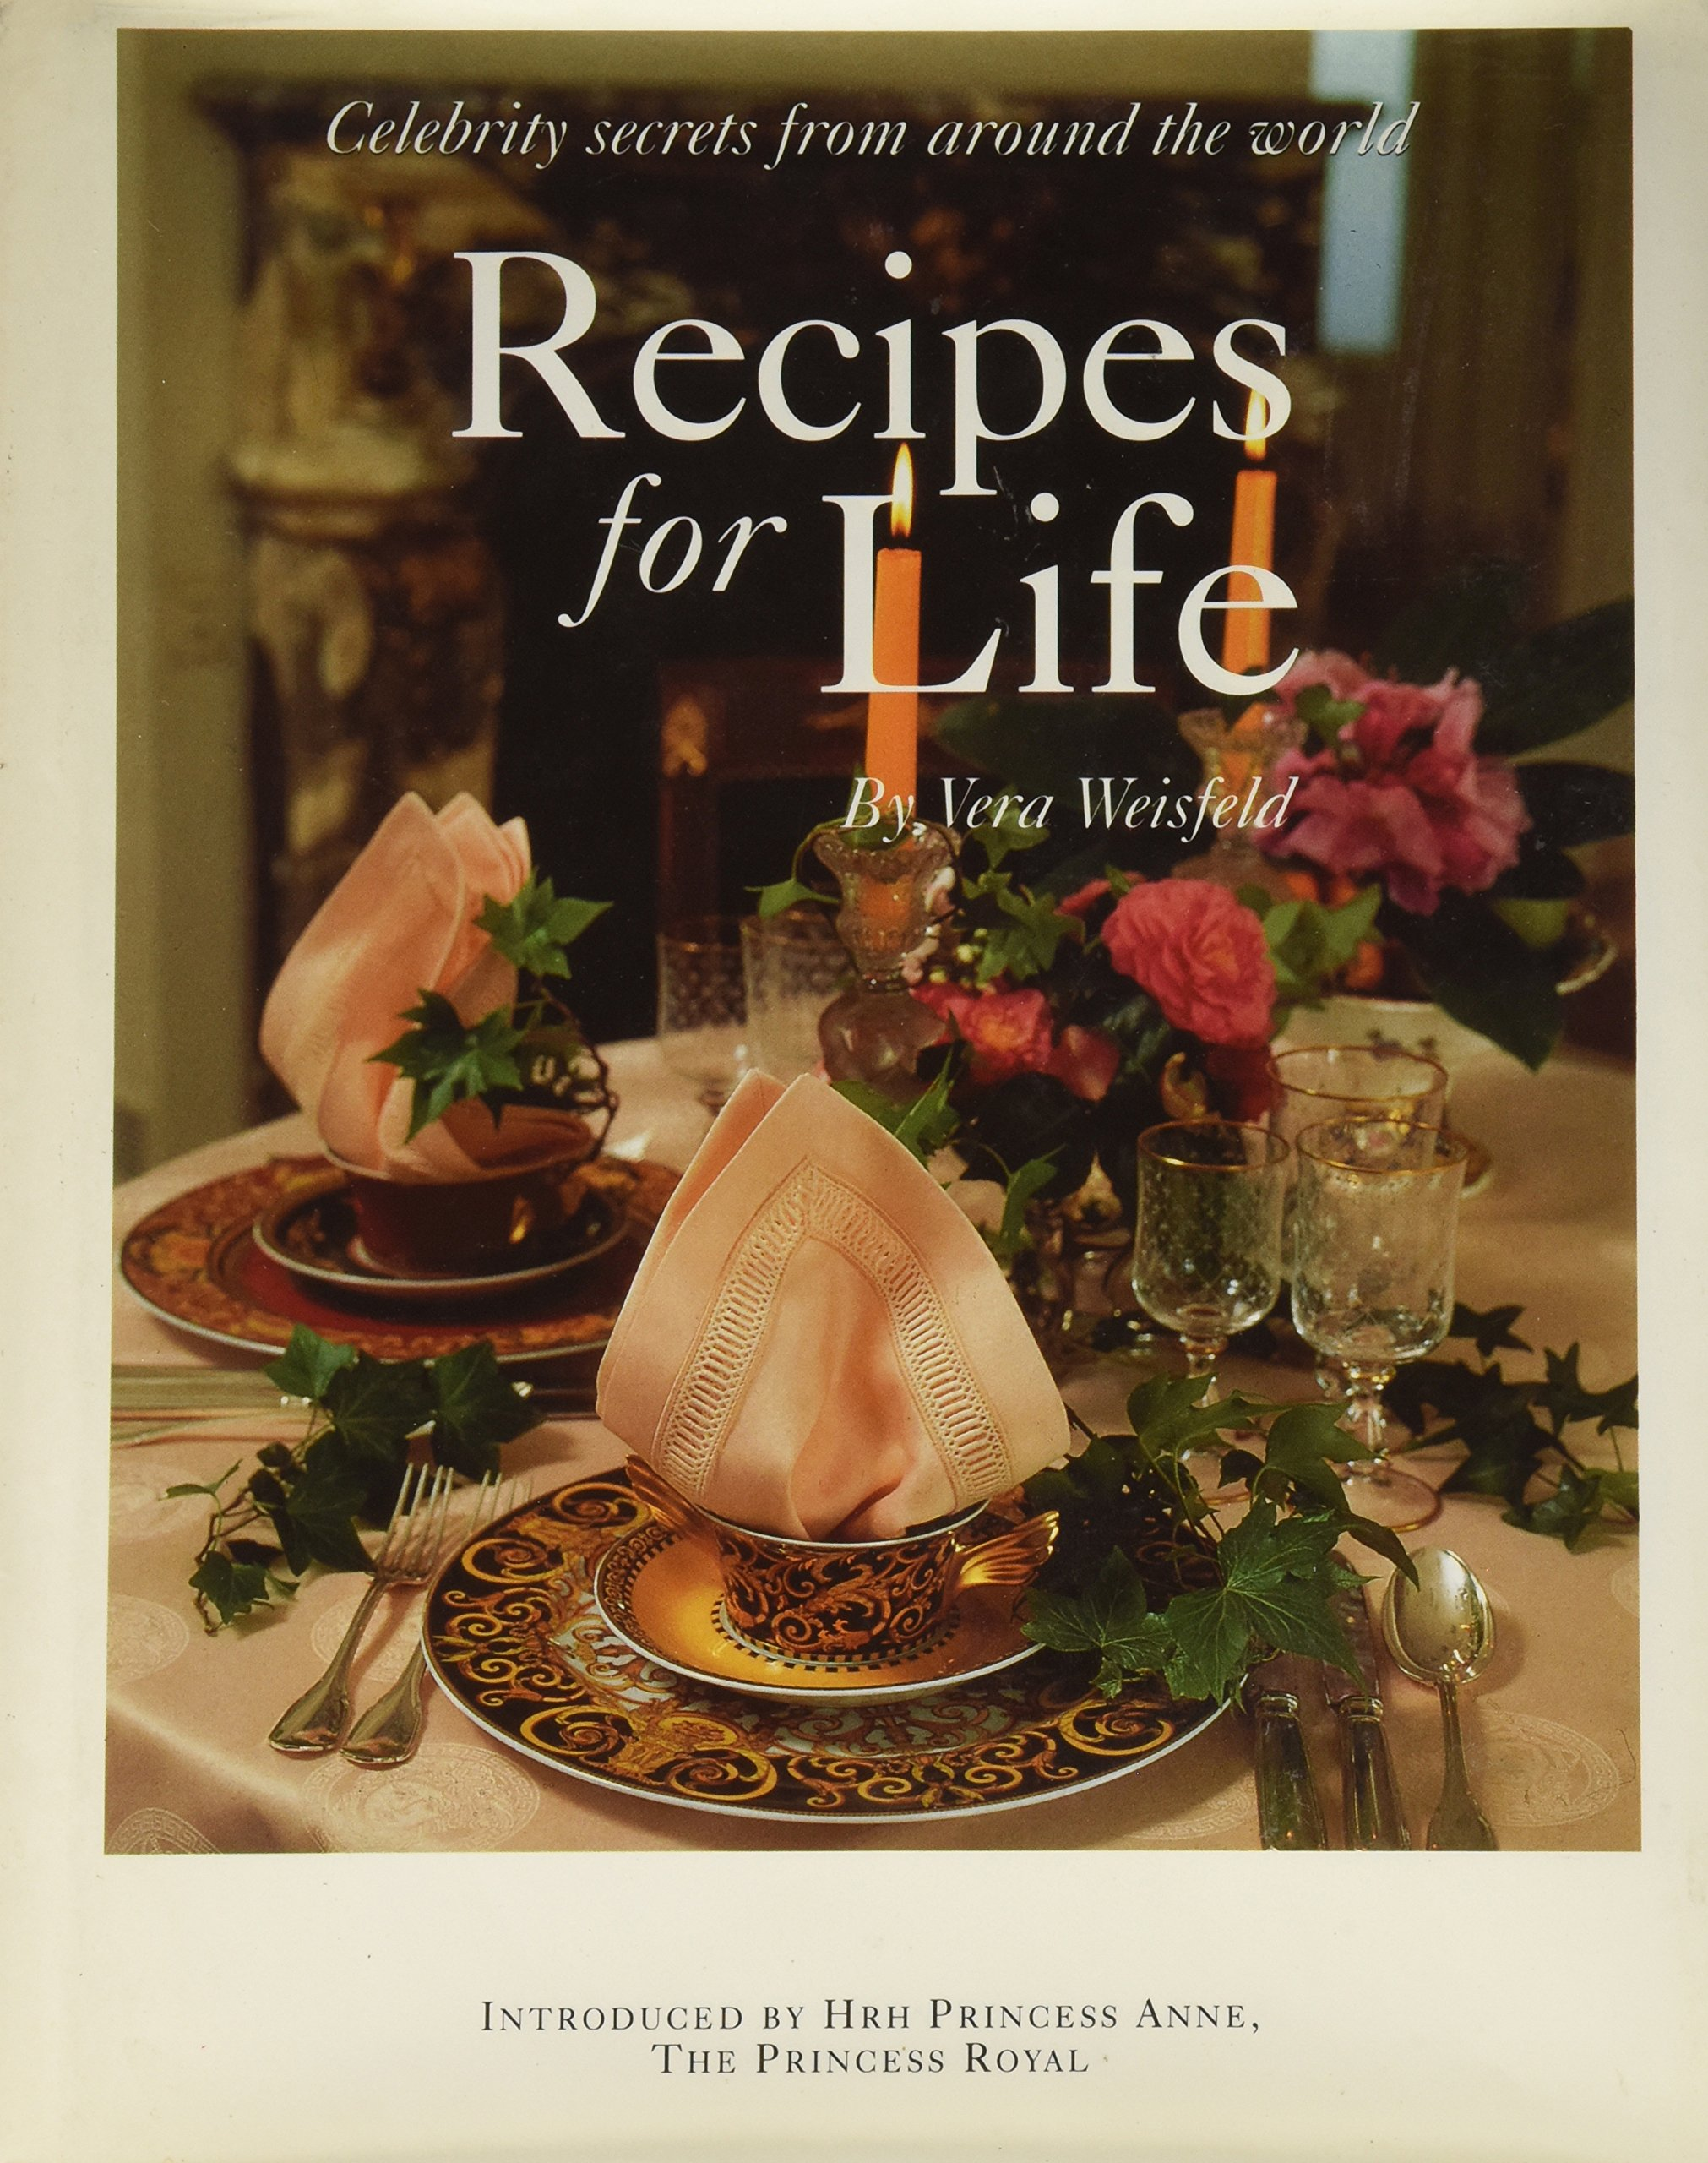 Recipes for life front cover.jpg